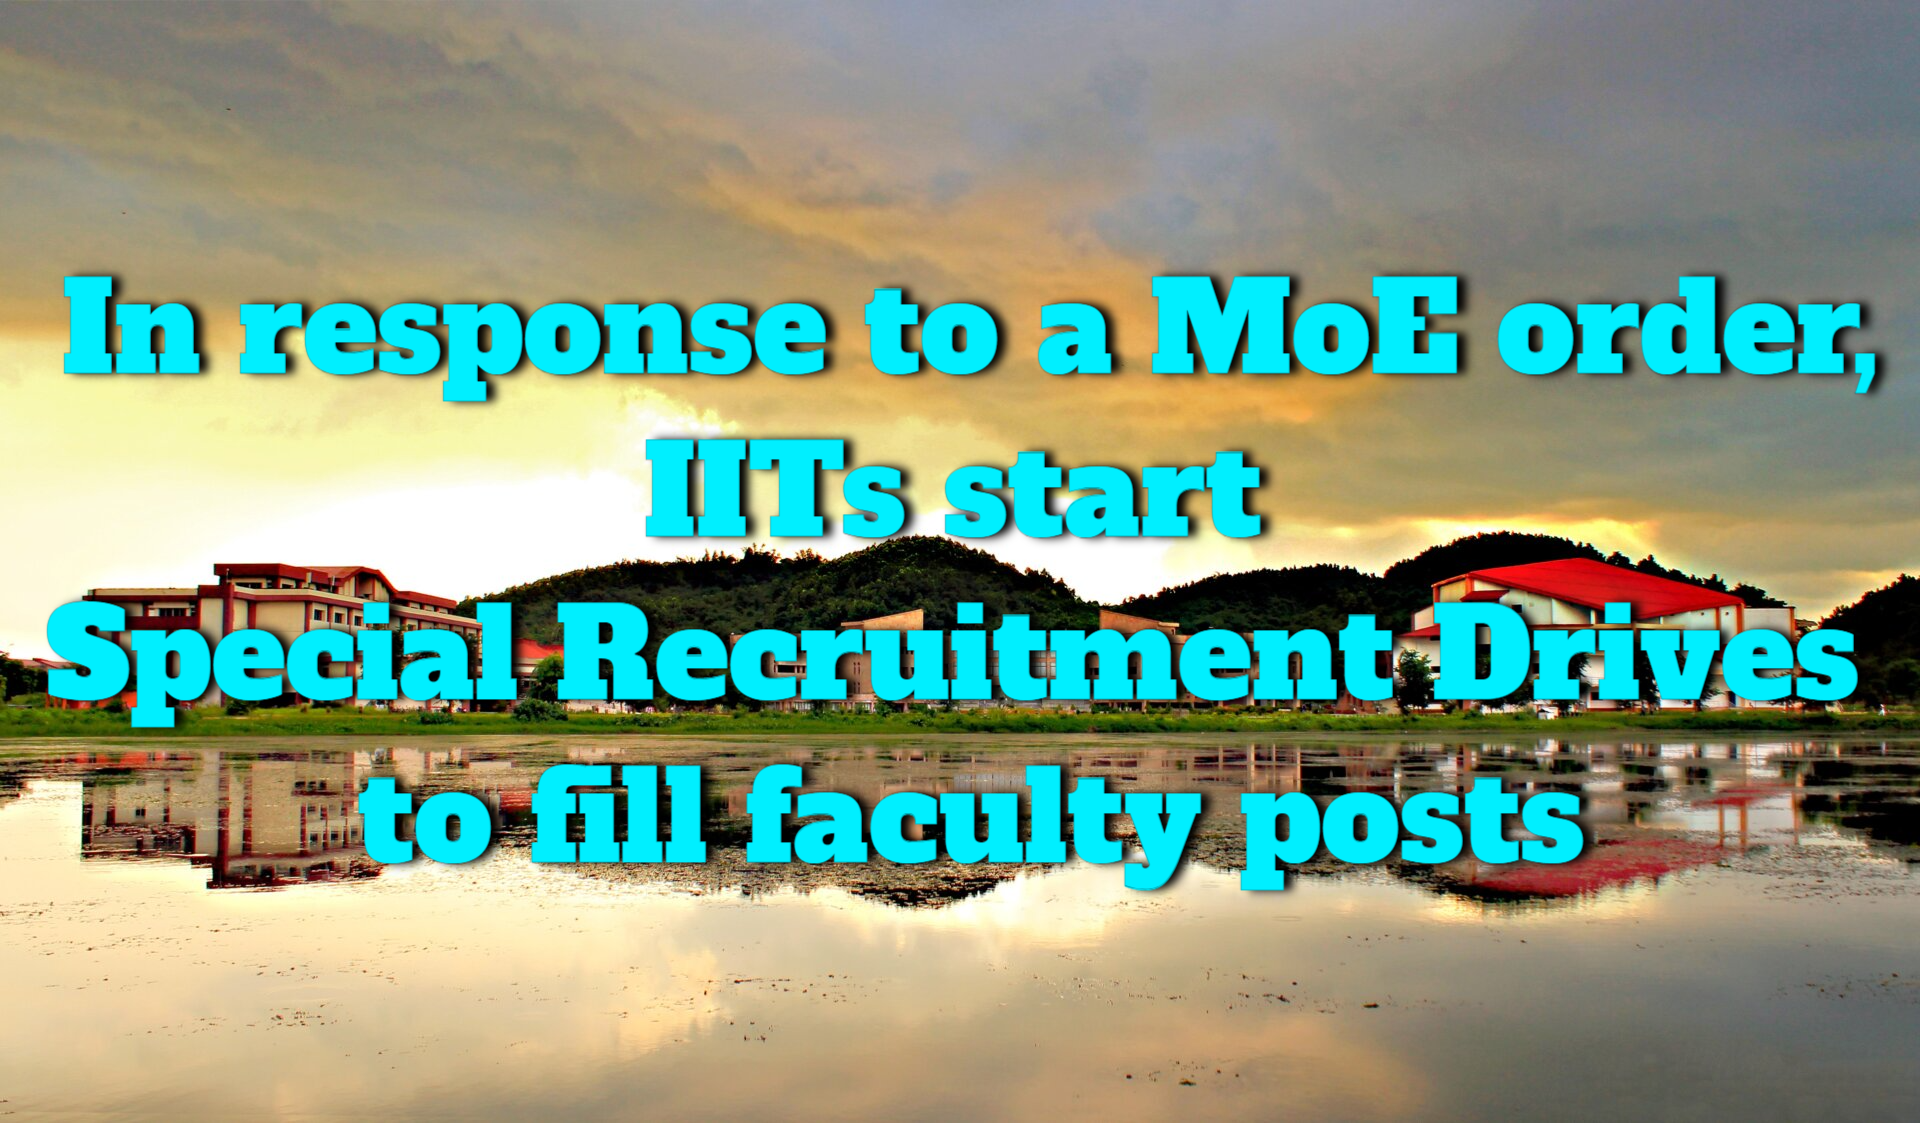 Special recruitment drive launched by IITs to fill reserved faculty posts in response to a MoE directive